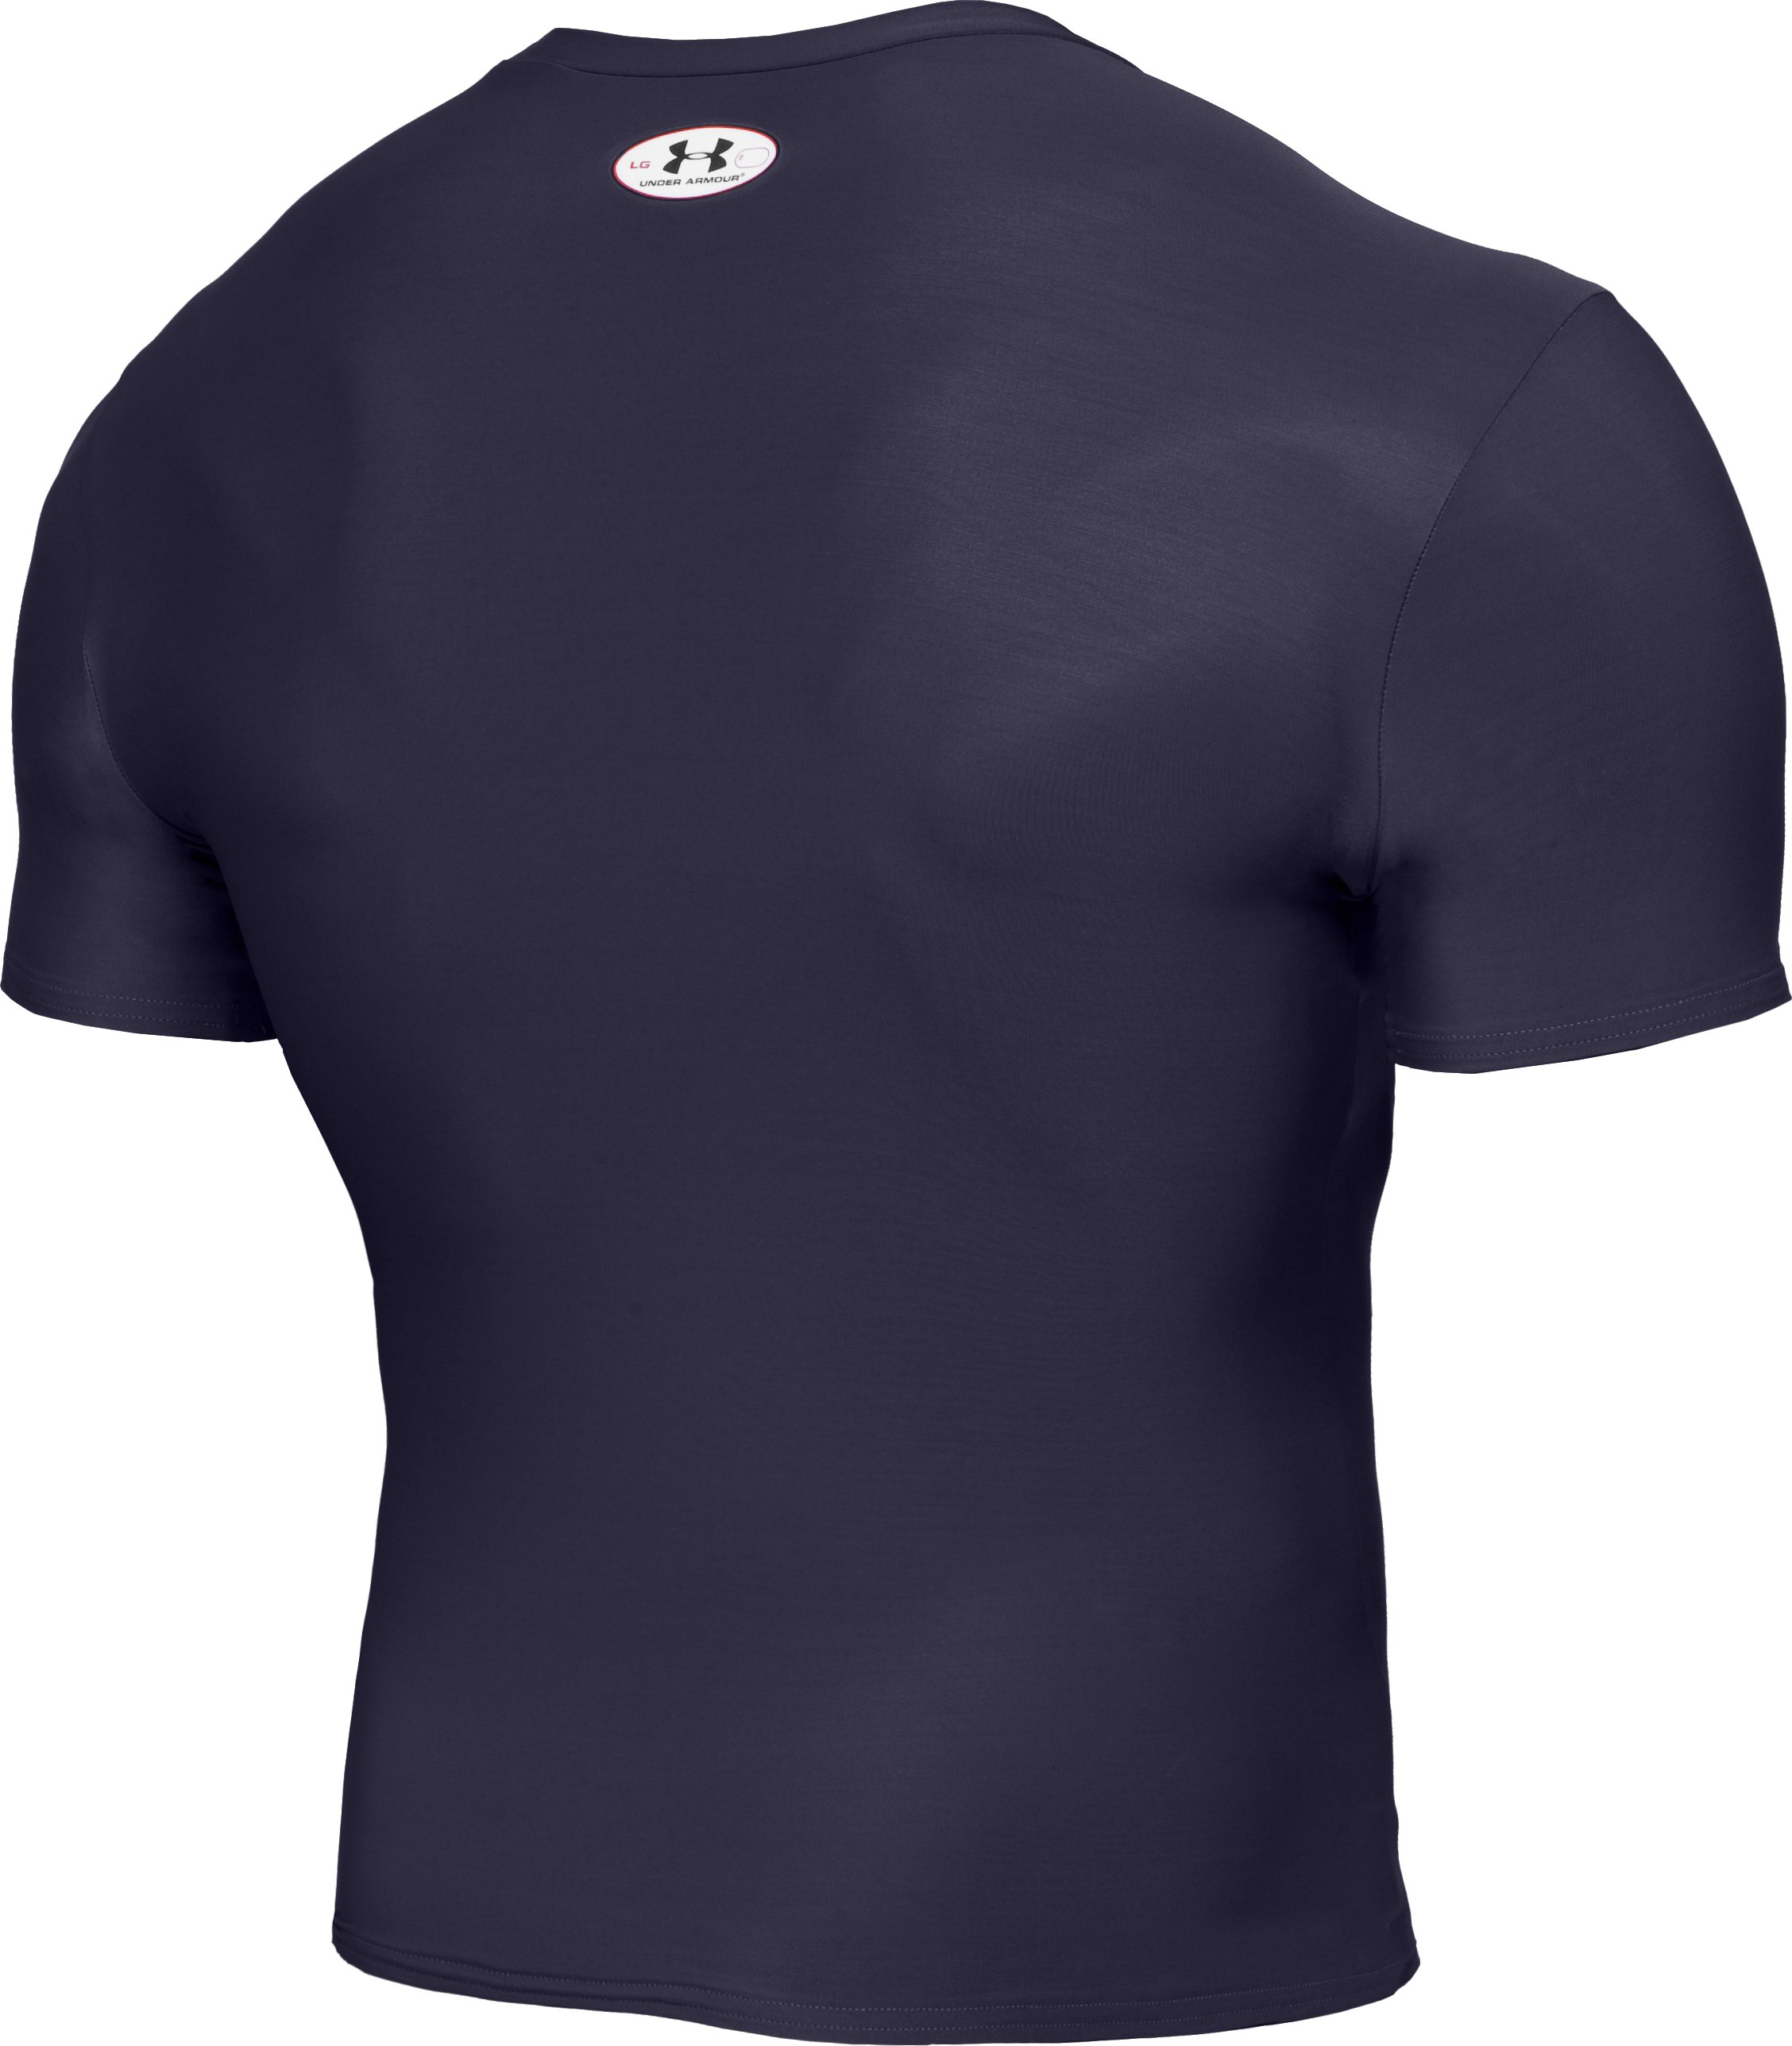 Men's HeatGear® Compression Short Sleeve T-Shirt, Midnight Navy